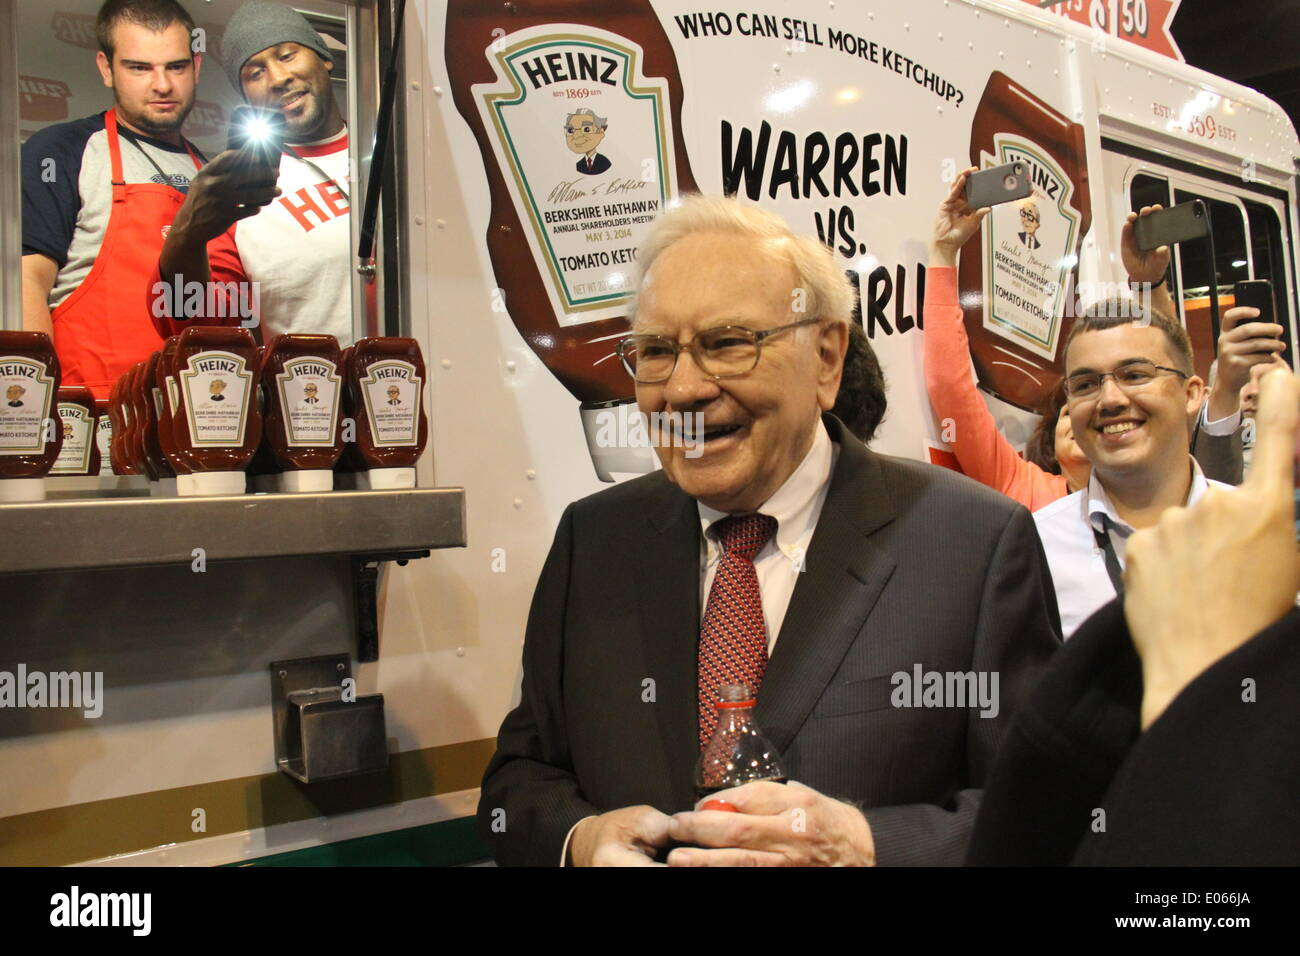 Omaha, USA. 3rd May, 2014. Warren Buffett, chairman of Berkshire Hathaway, introduces products to shareholders before the annual shareholders' meeting of Berkshire Hathaway in Omaha, the United States, May 3, 2014. Credit:  Huang Jihui/Xinhua/Alamy Live News - Stock Image